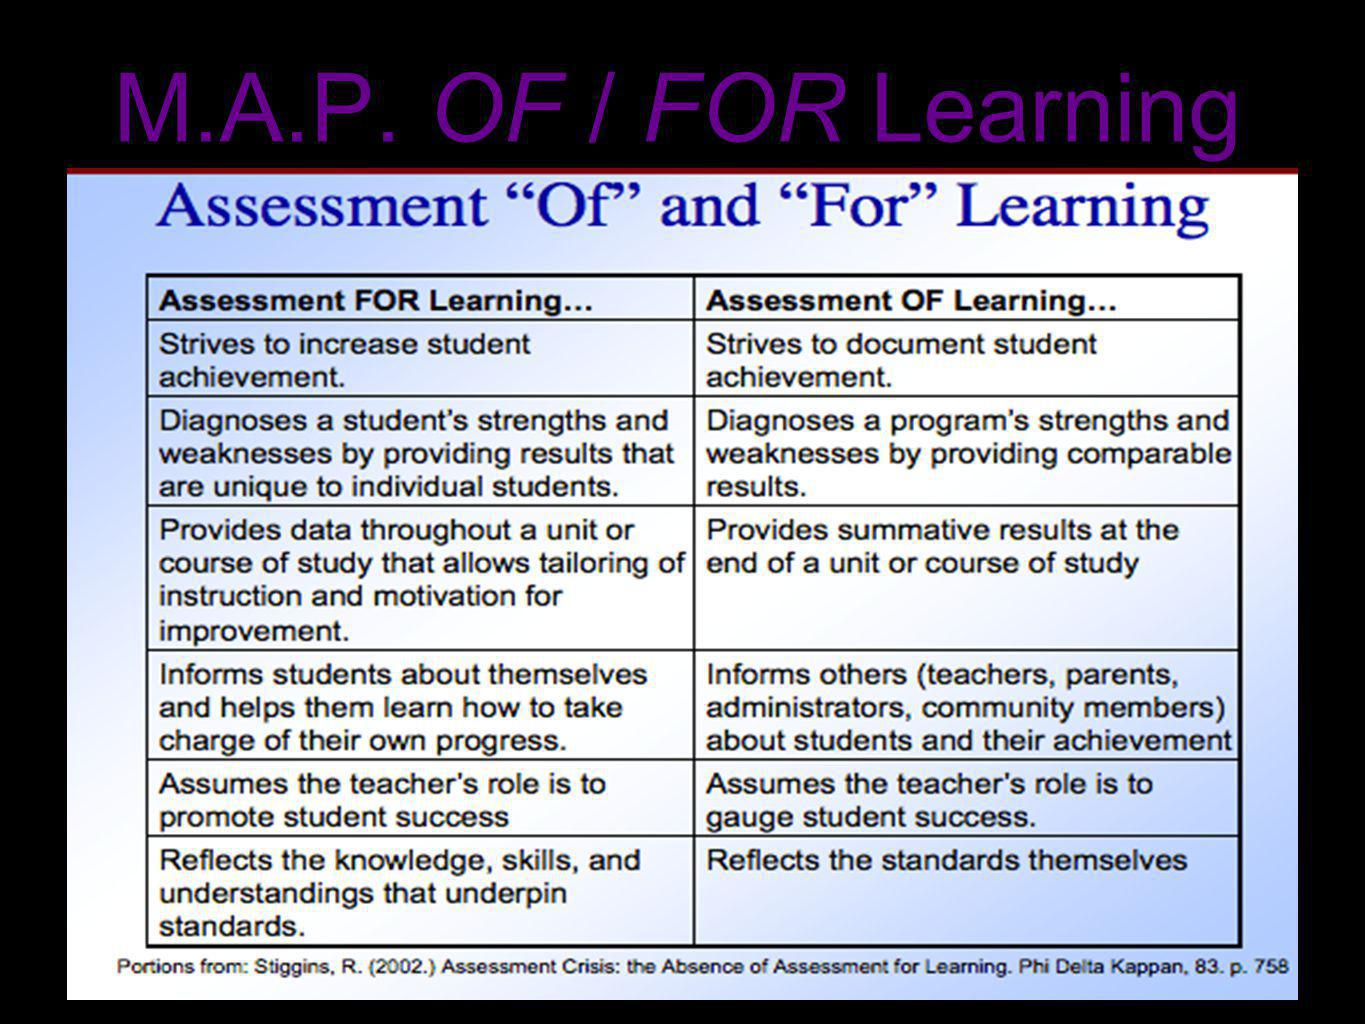 M.A.P. OF / FOR Learning